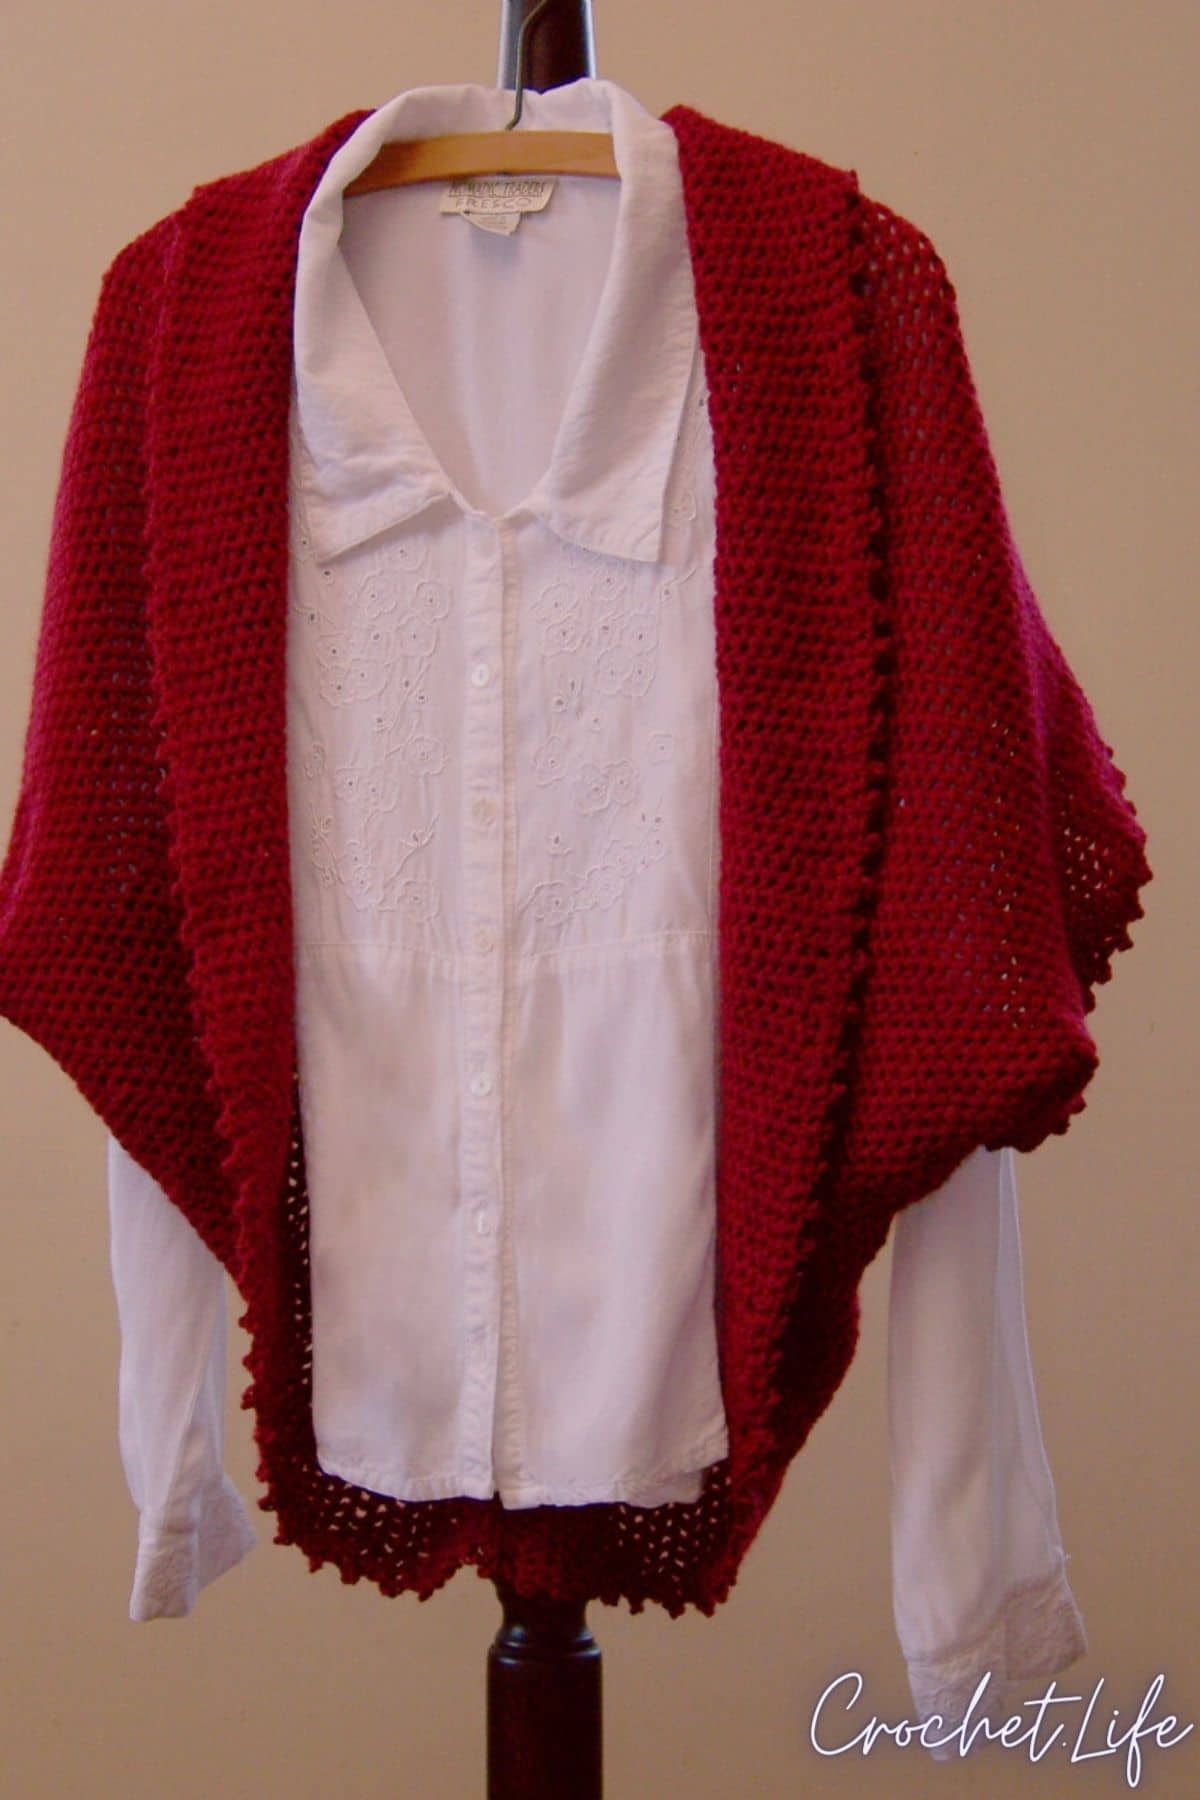 Wild cranberries crochet shrug pattern